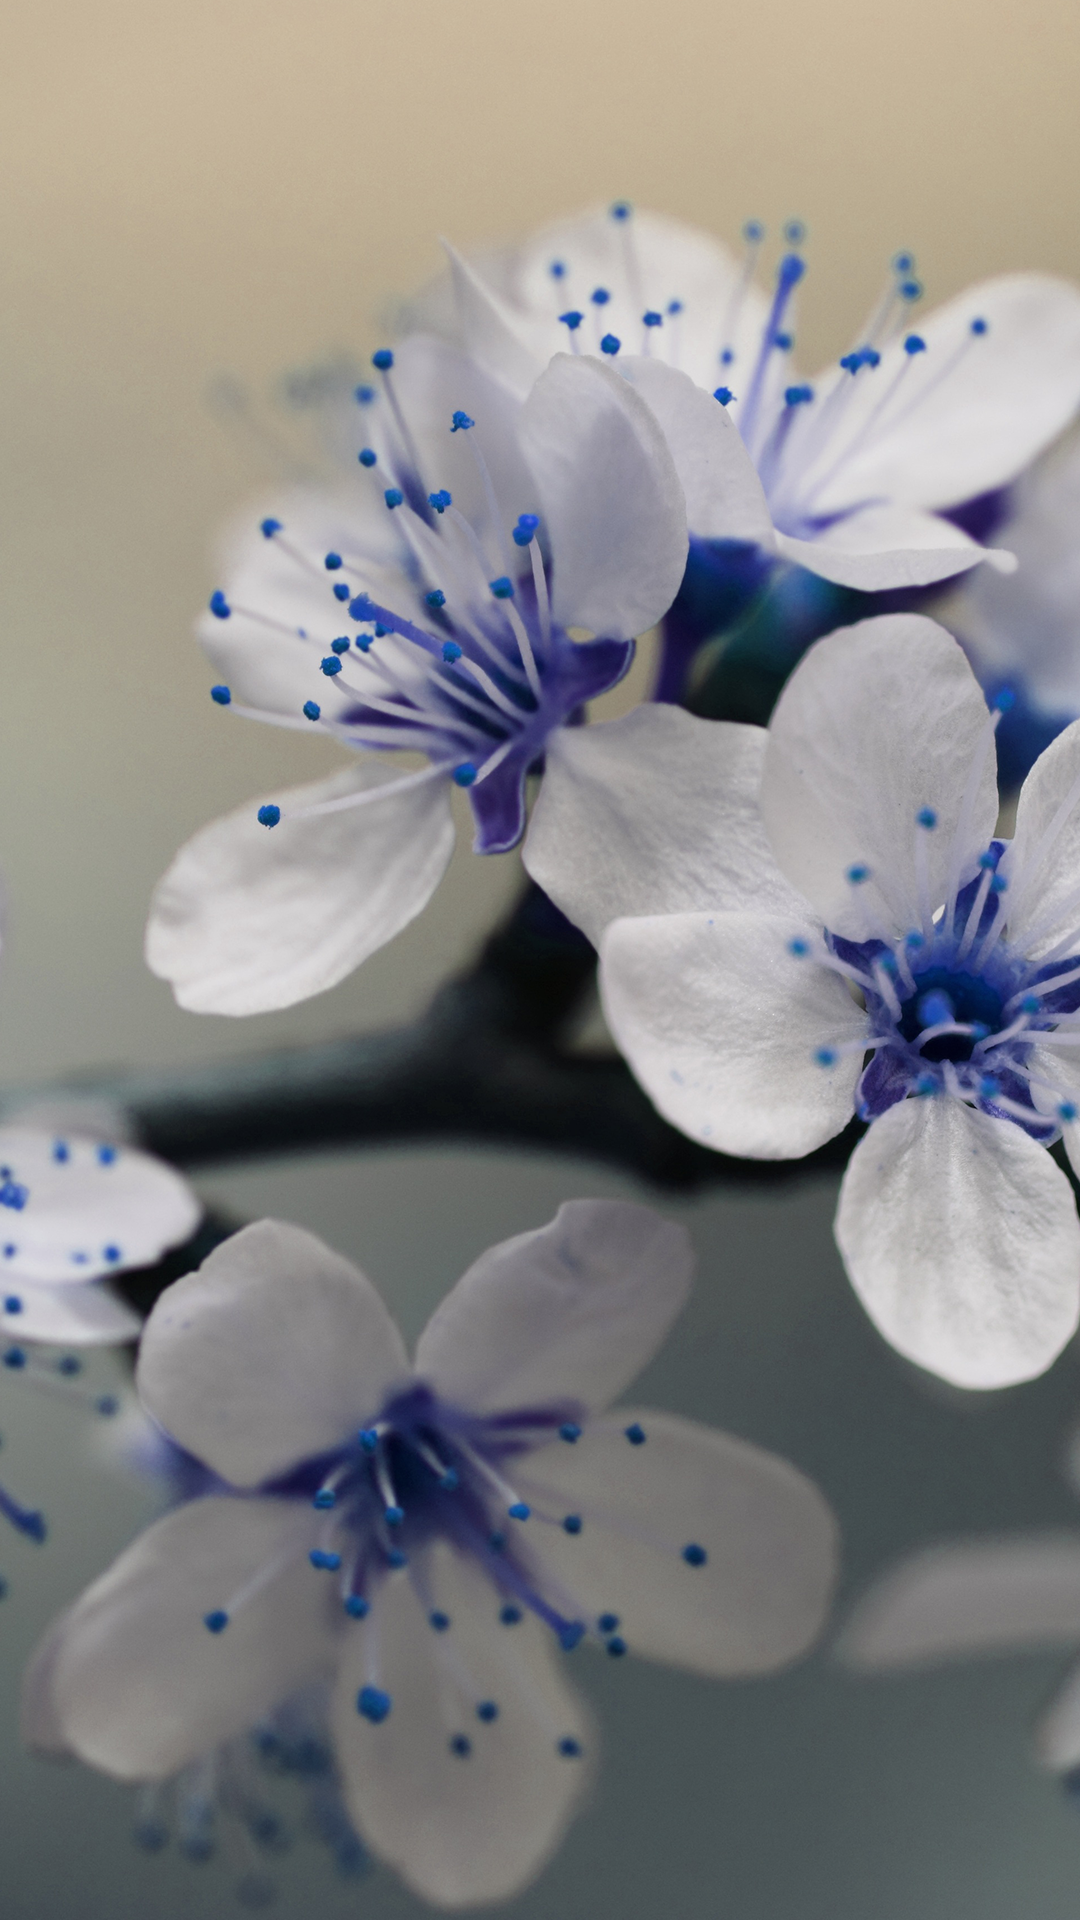 Free Hd Beautiful Blue Flowers Iphone Wallpaper For Download 0314